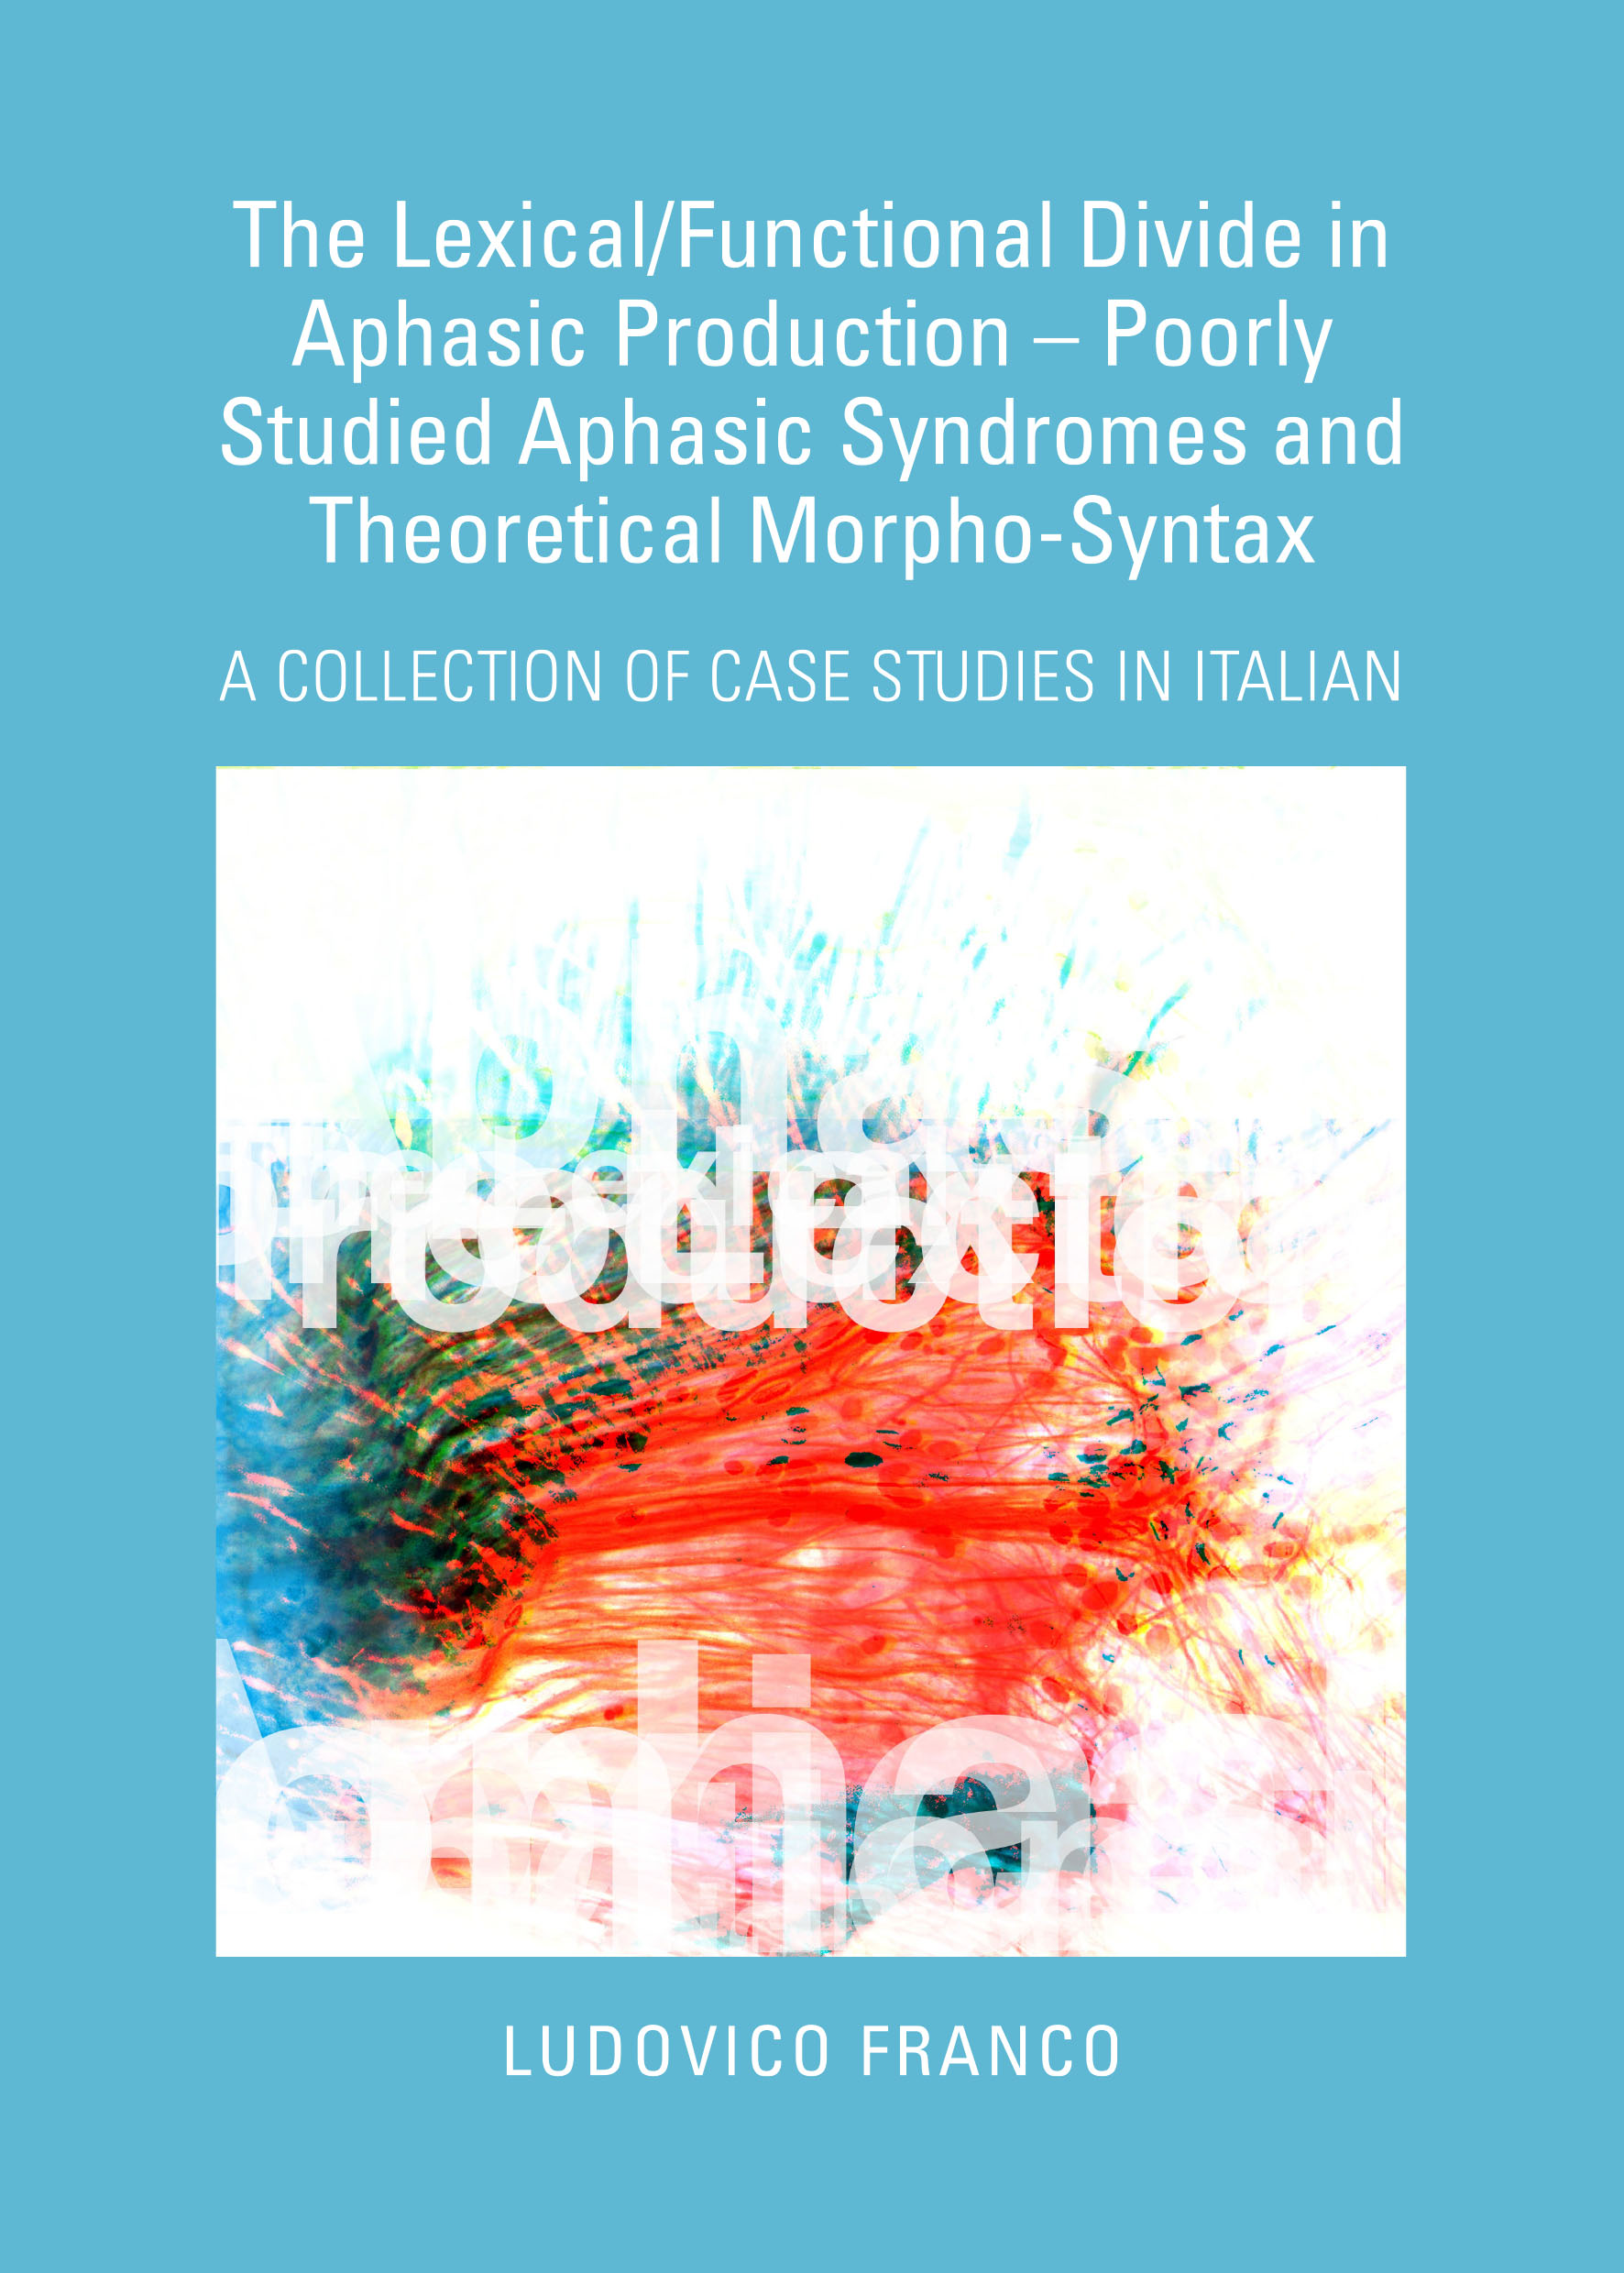 The Lexical/Functional Divide in Aphasic Production – Poorly Studied Aphasic Syndromes and Theoretical Morpho-Syntax: A Collection of Case Studies in Italian